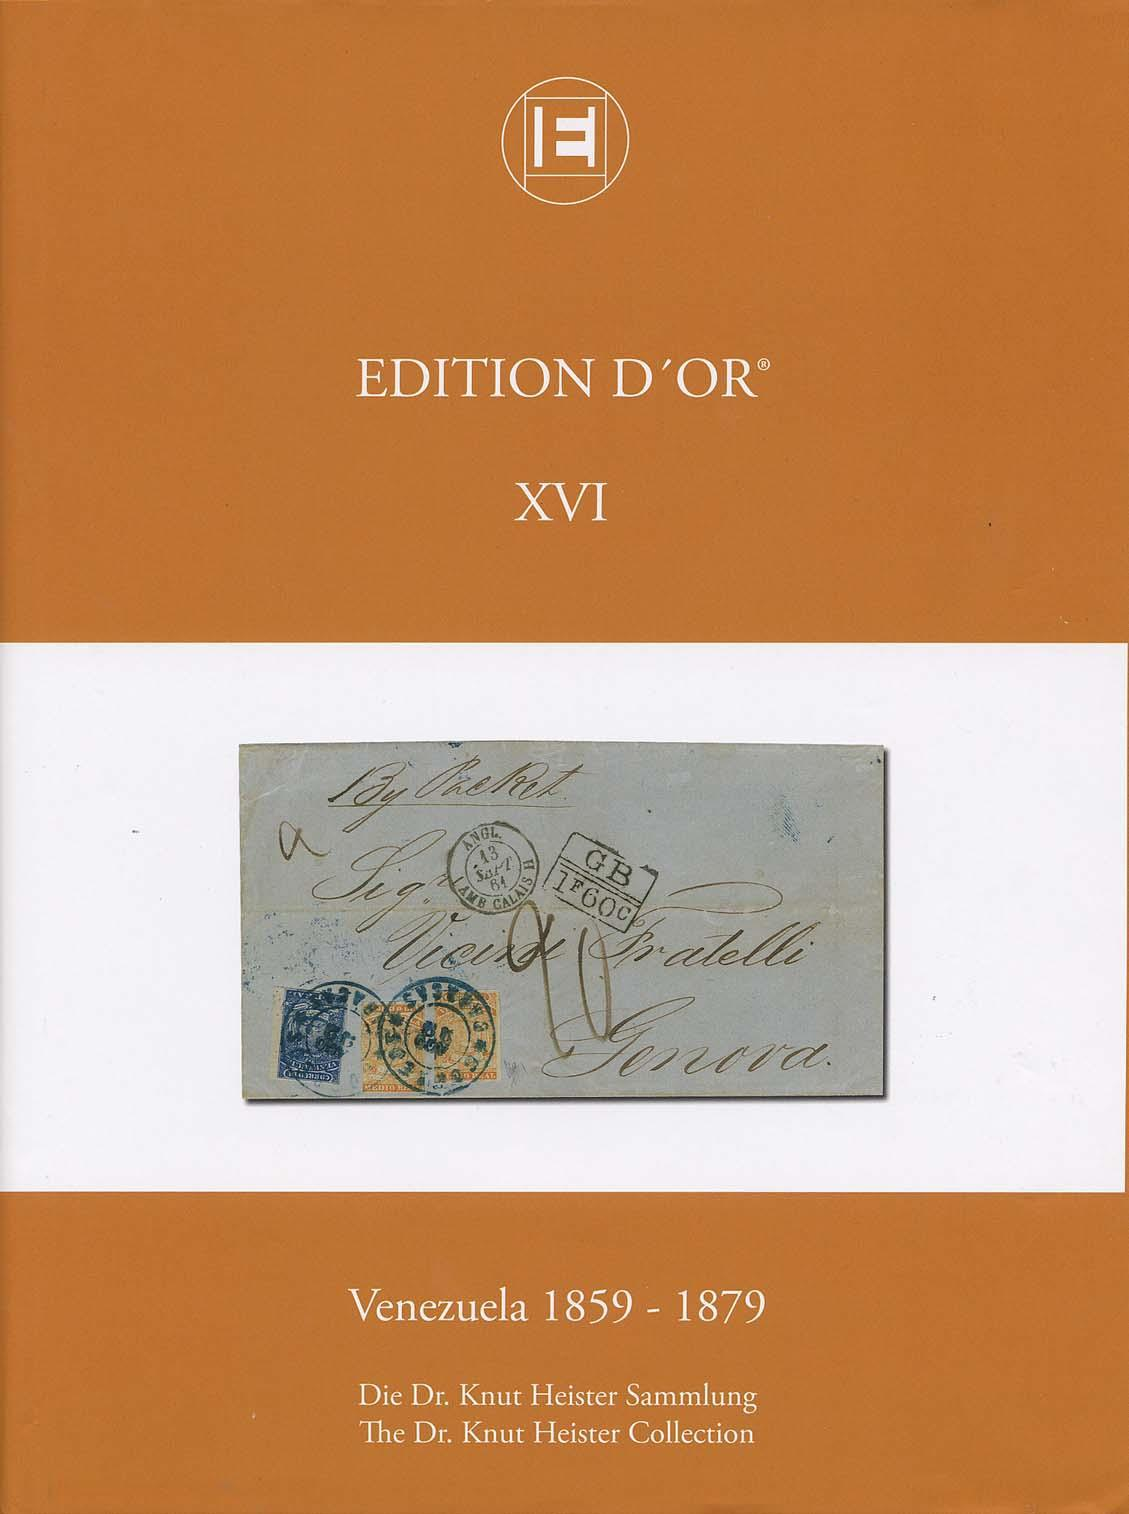 Vol. 16: Venezuela 1859-1879 • The Dr. Knut Heister Collection